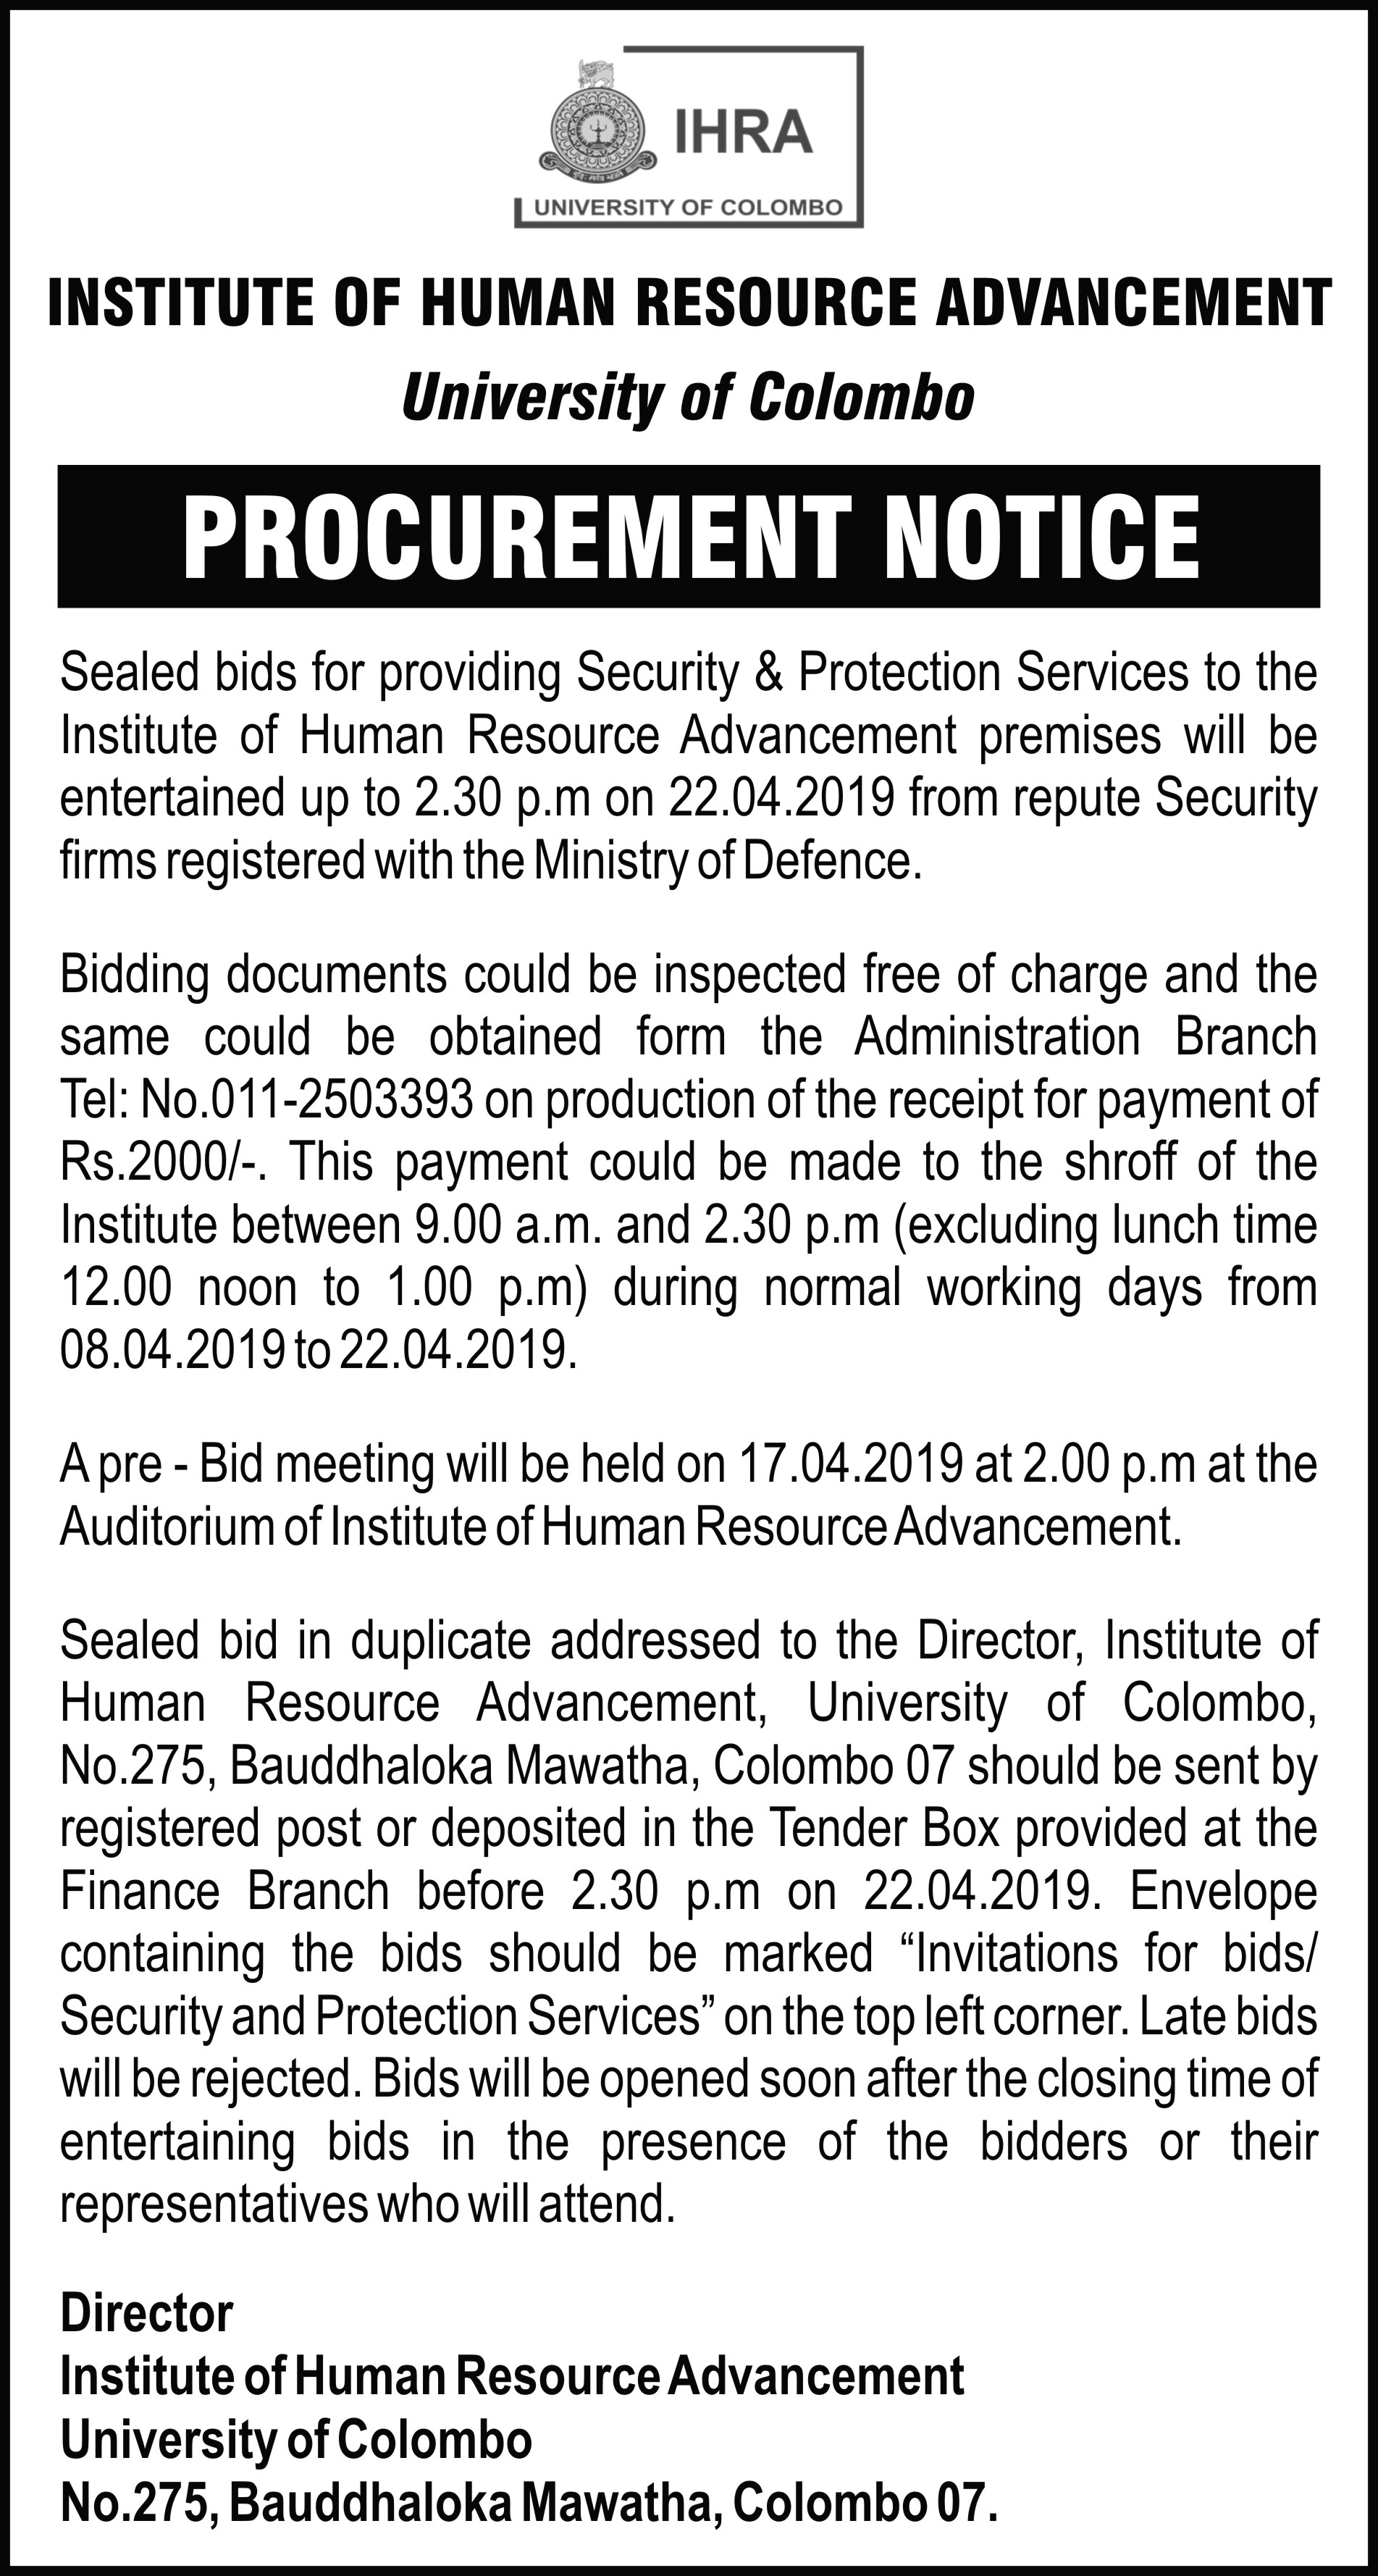 Invitation for bids  (Security and Protection Services)